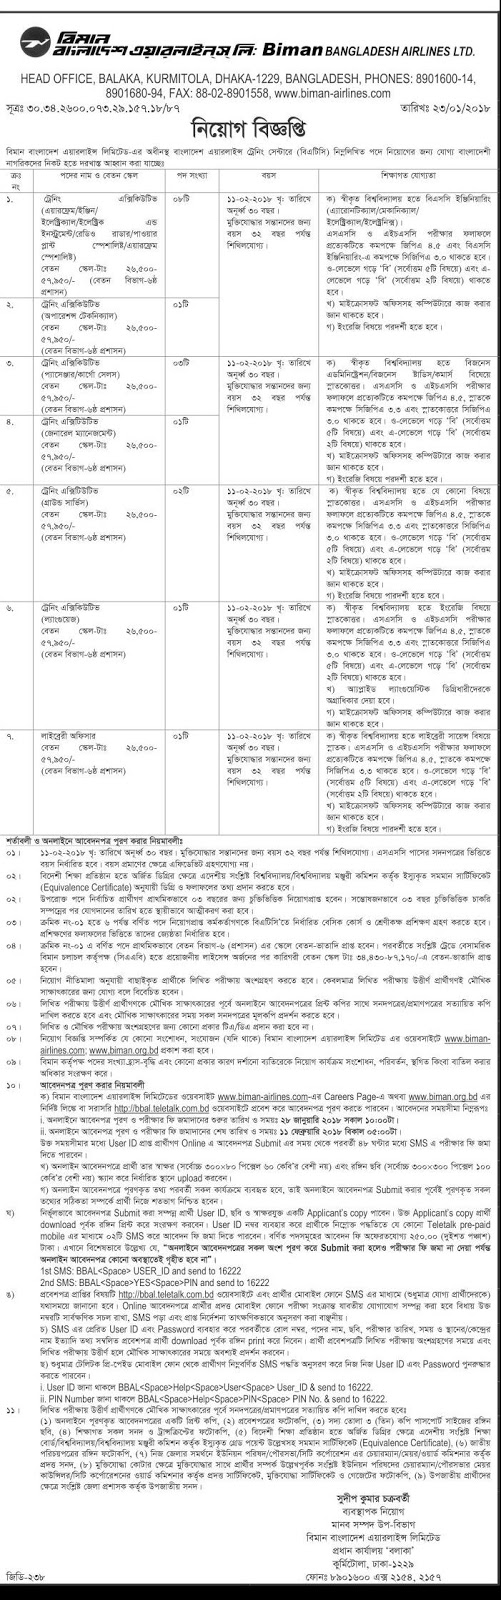 Biman Bangladesh Airlines Limited (BBAL) Recruitment Circular 2018